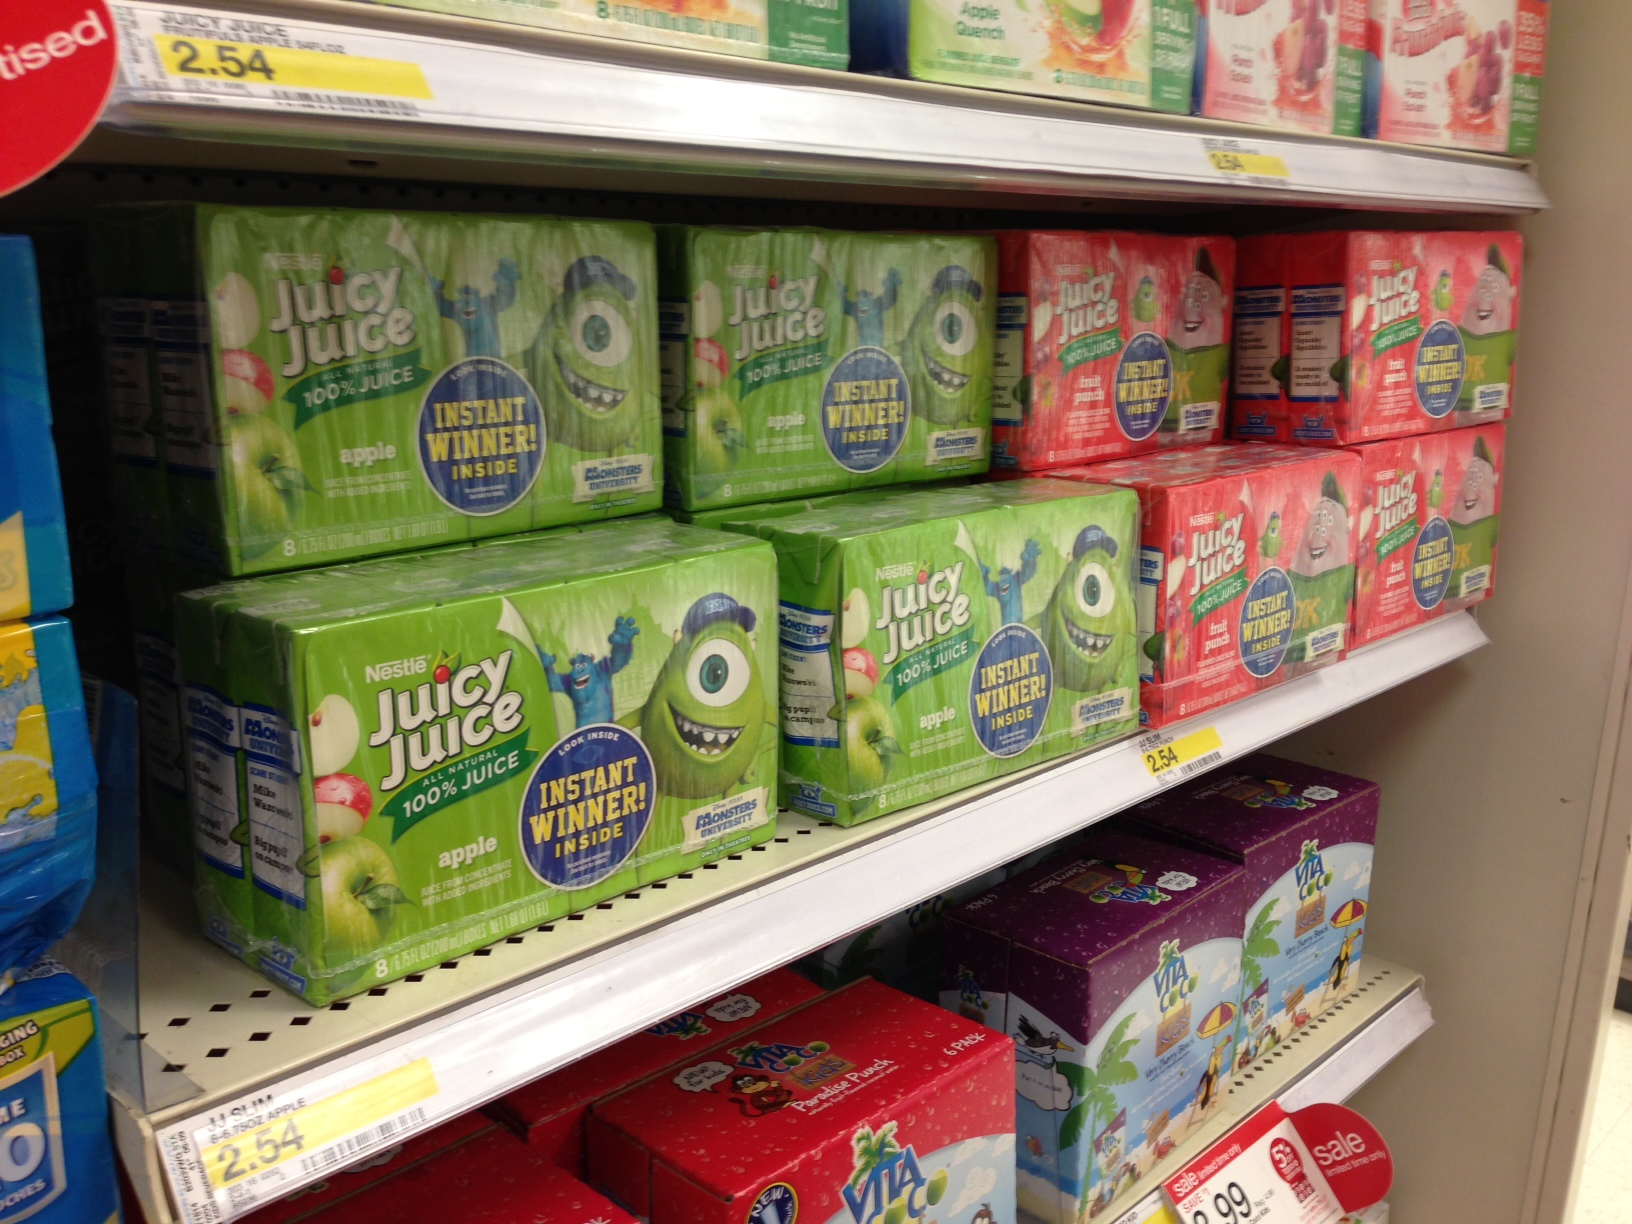 Monsters Inc Juicy Juice Boxes